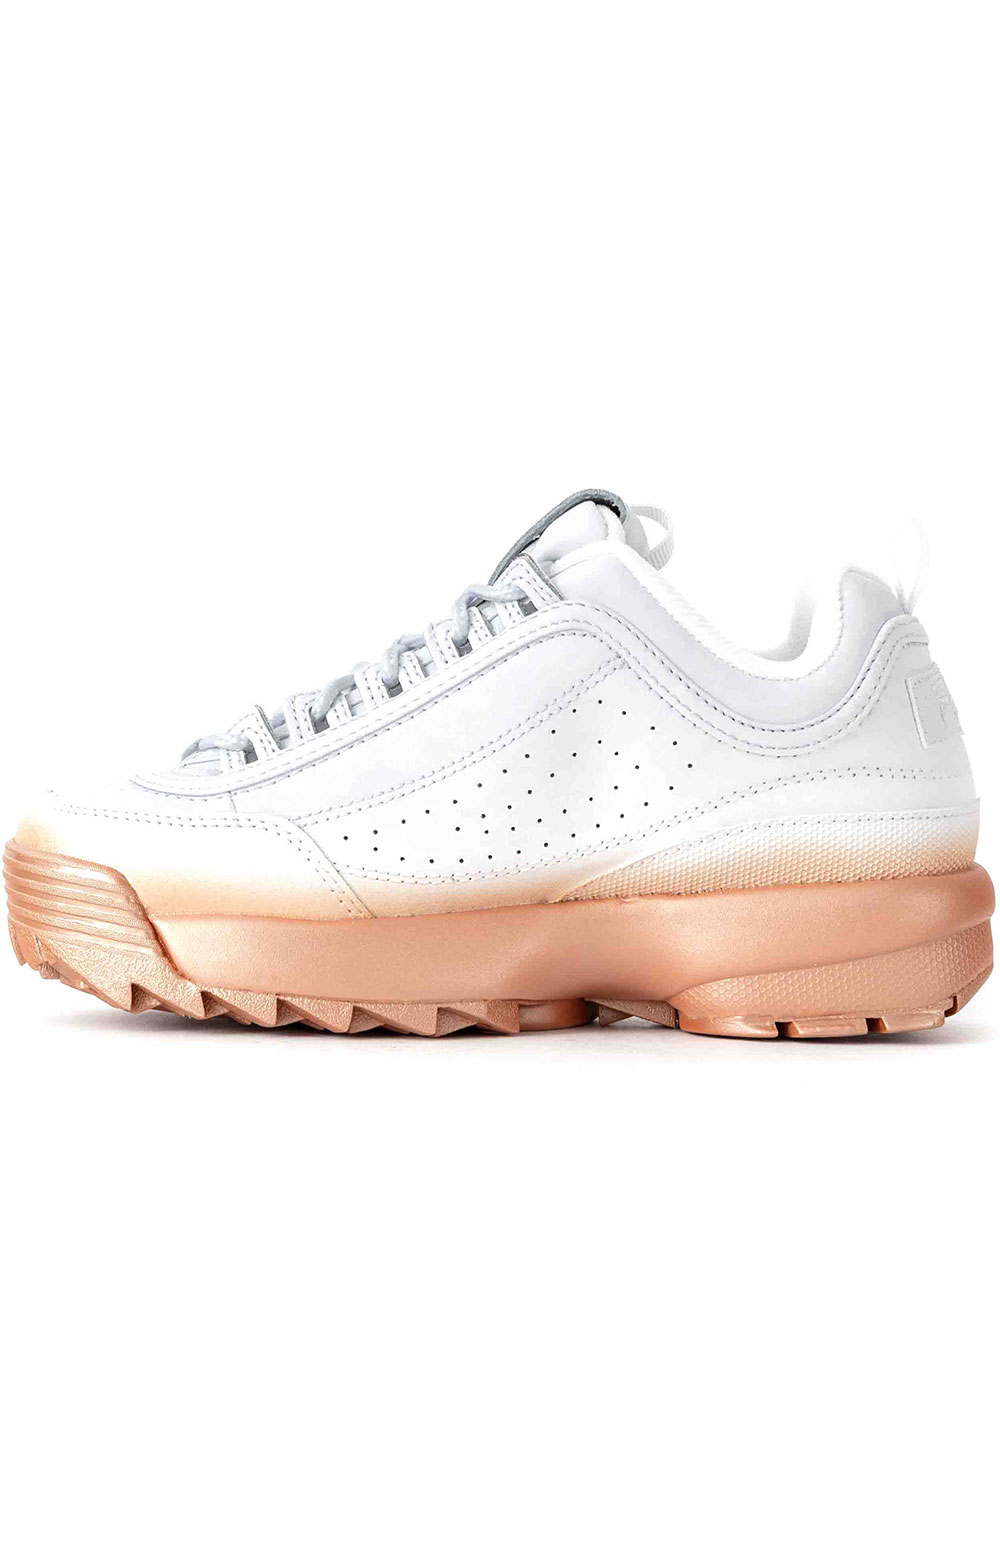 Brights Fade Disruptor II Shoes - White/Rose Gold 4